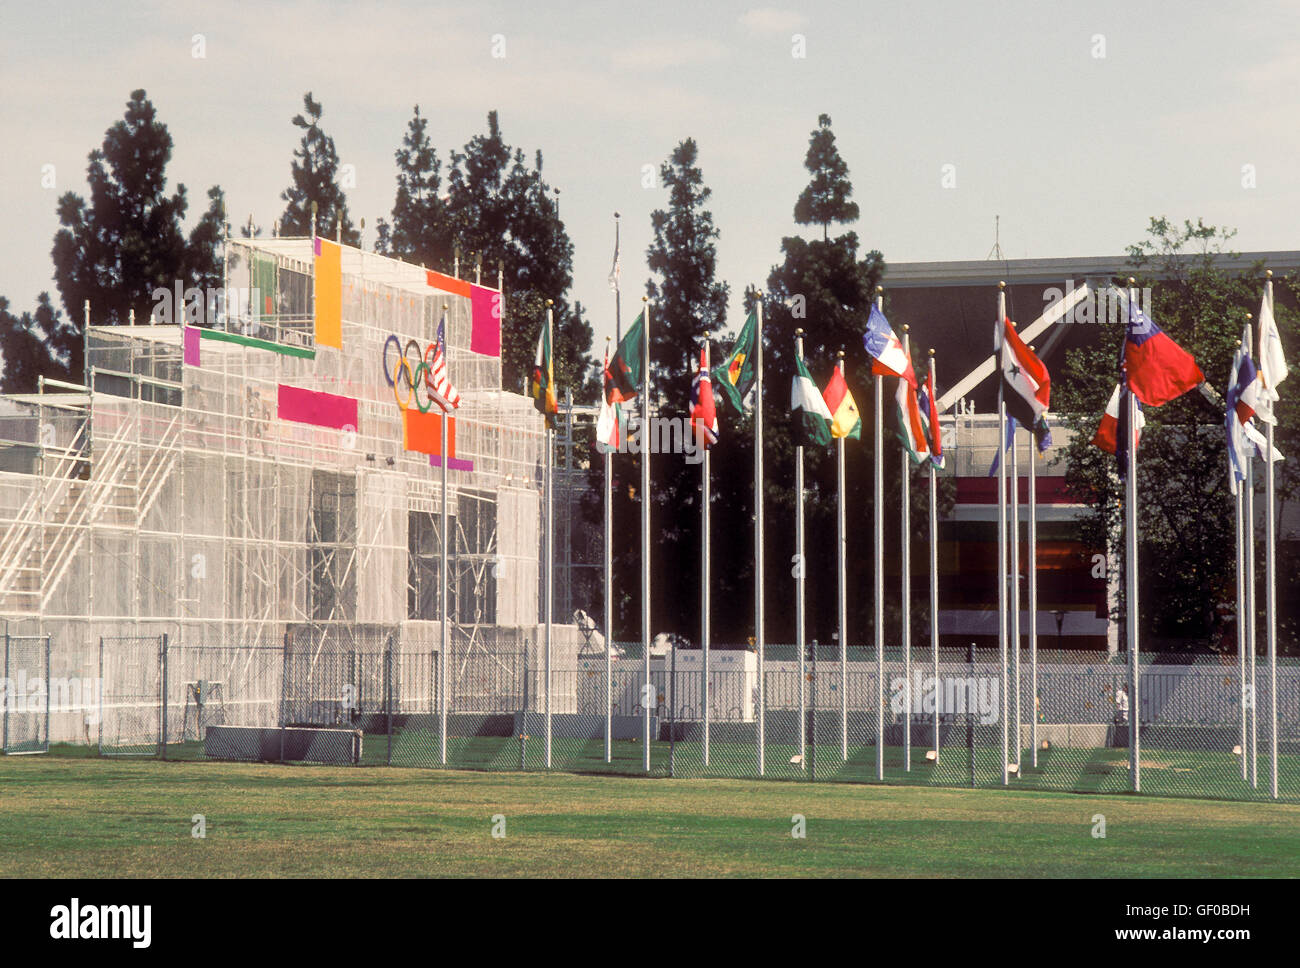 Grounds at UCLA Olympic (athletes') Village at 1984 Olympic Games in Los Angeles. - Stock Image